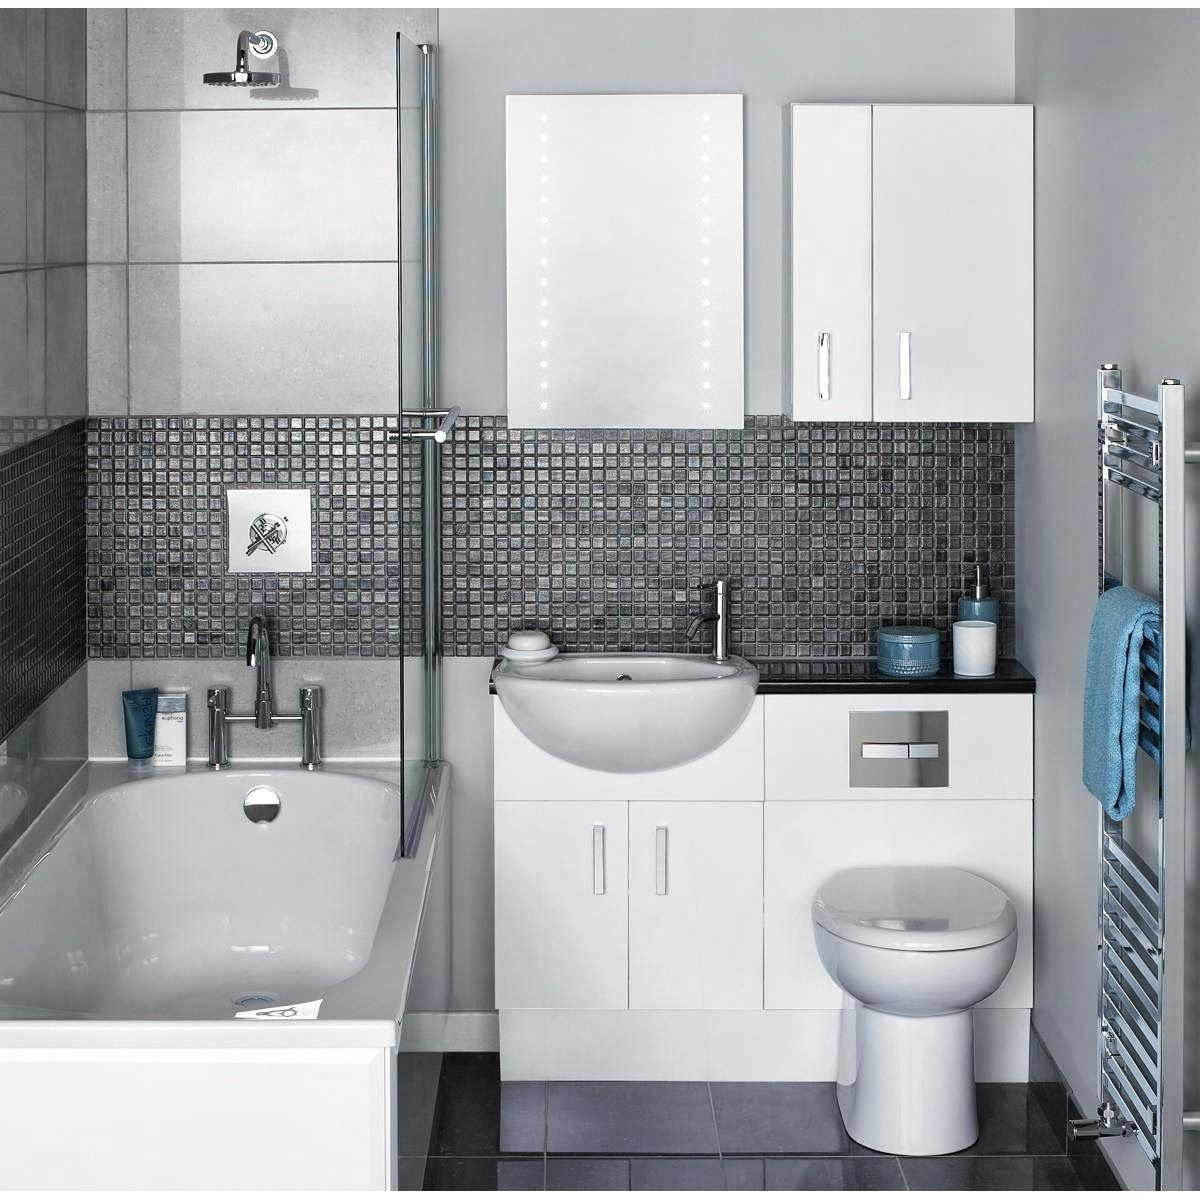 Small Space Bathroom Design The Best Design For Your Home